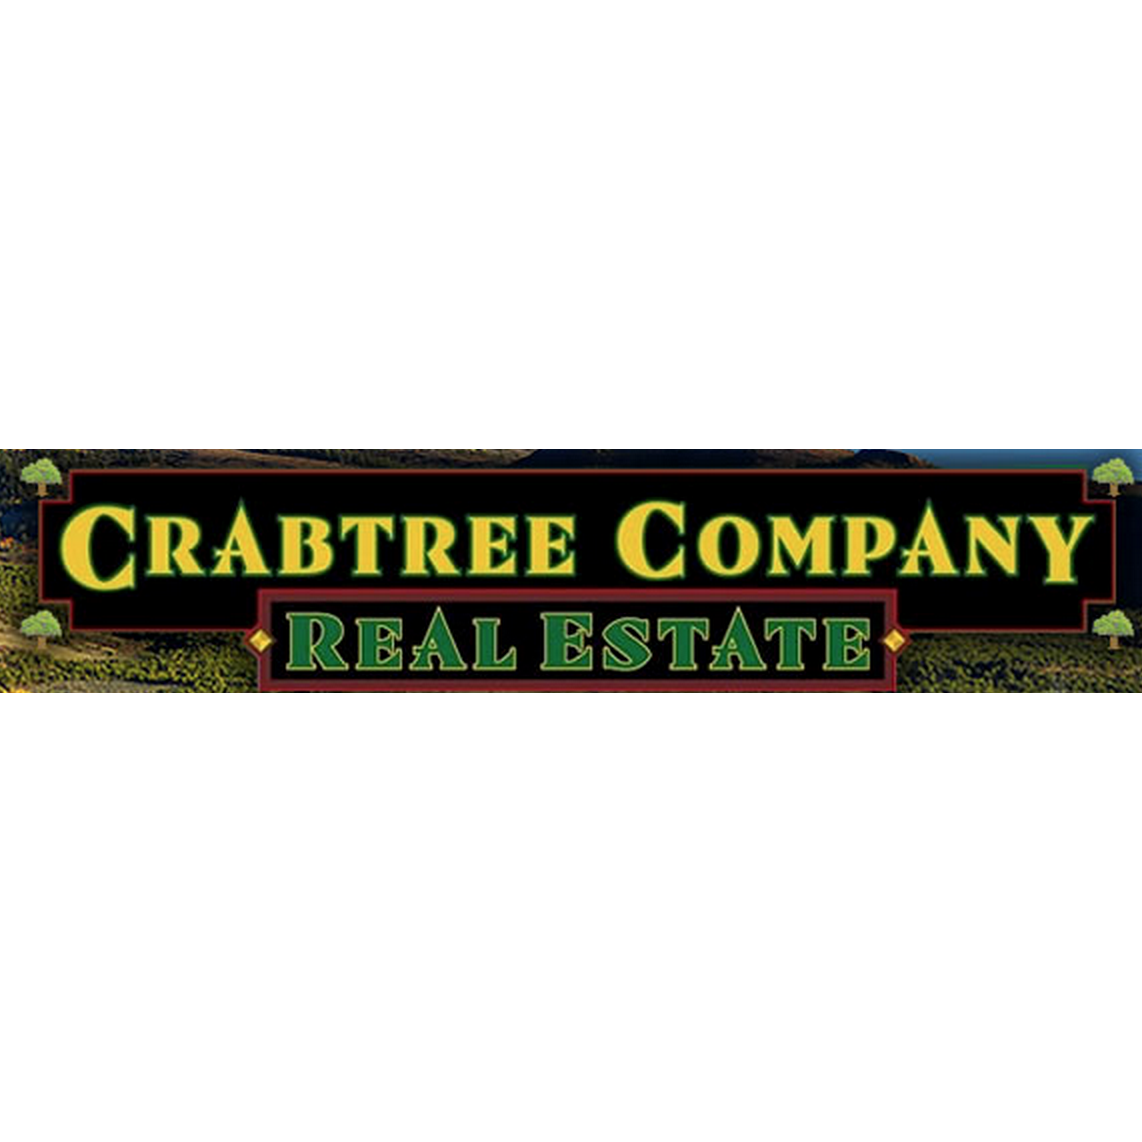 Crabtree Company Real Estate